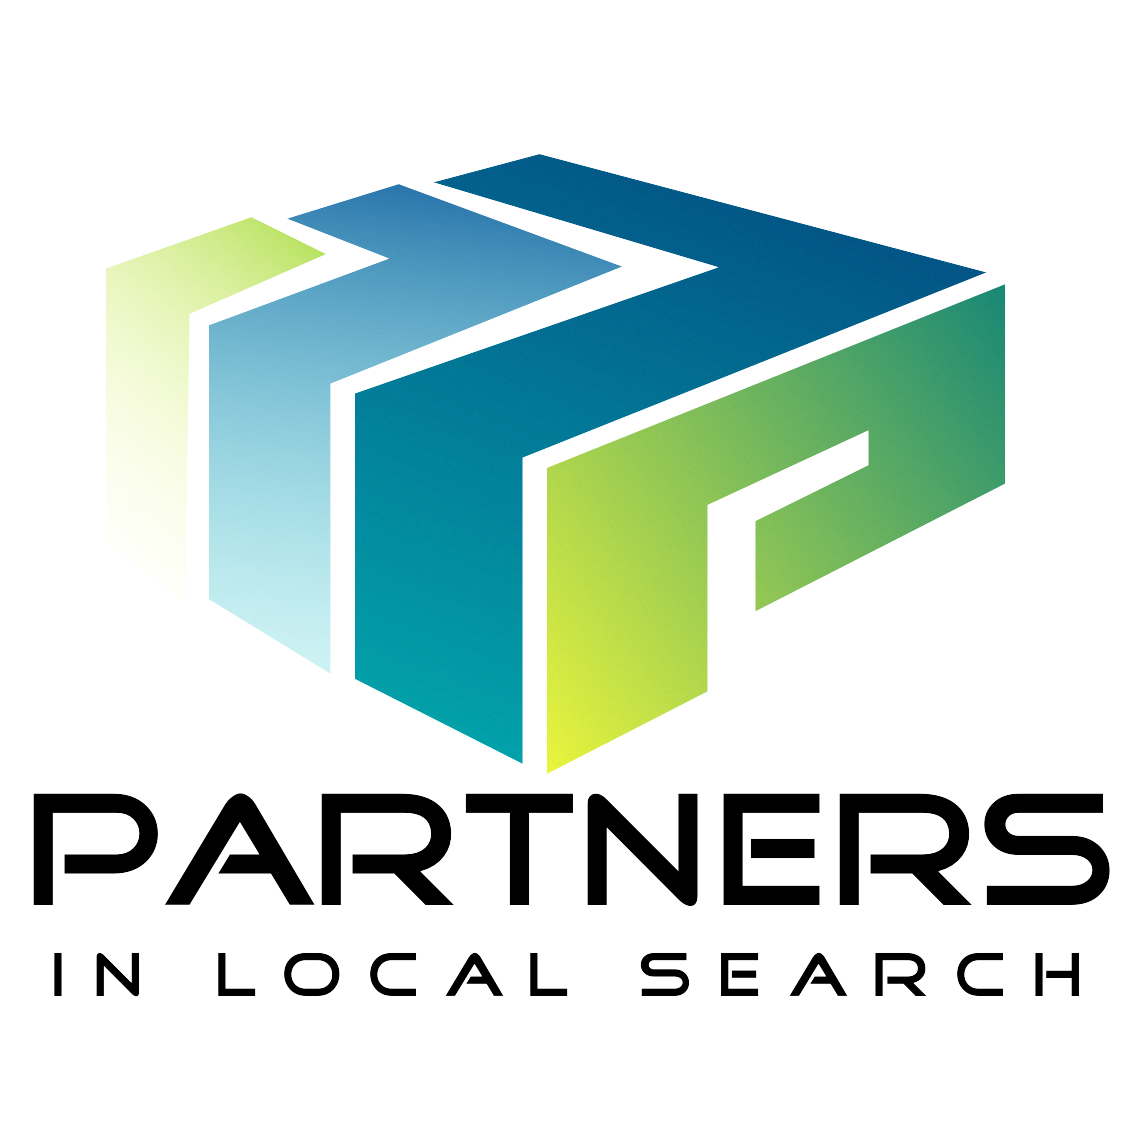 Partners In Local Search LLC. - Hollywood, FL - Advertising Agencies & Public Relations